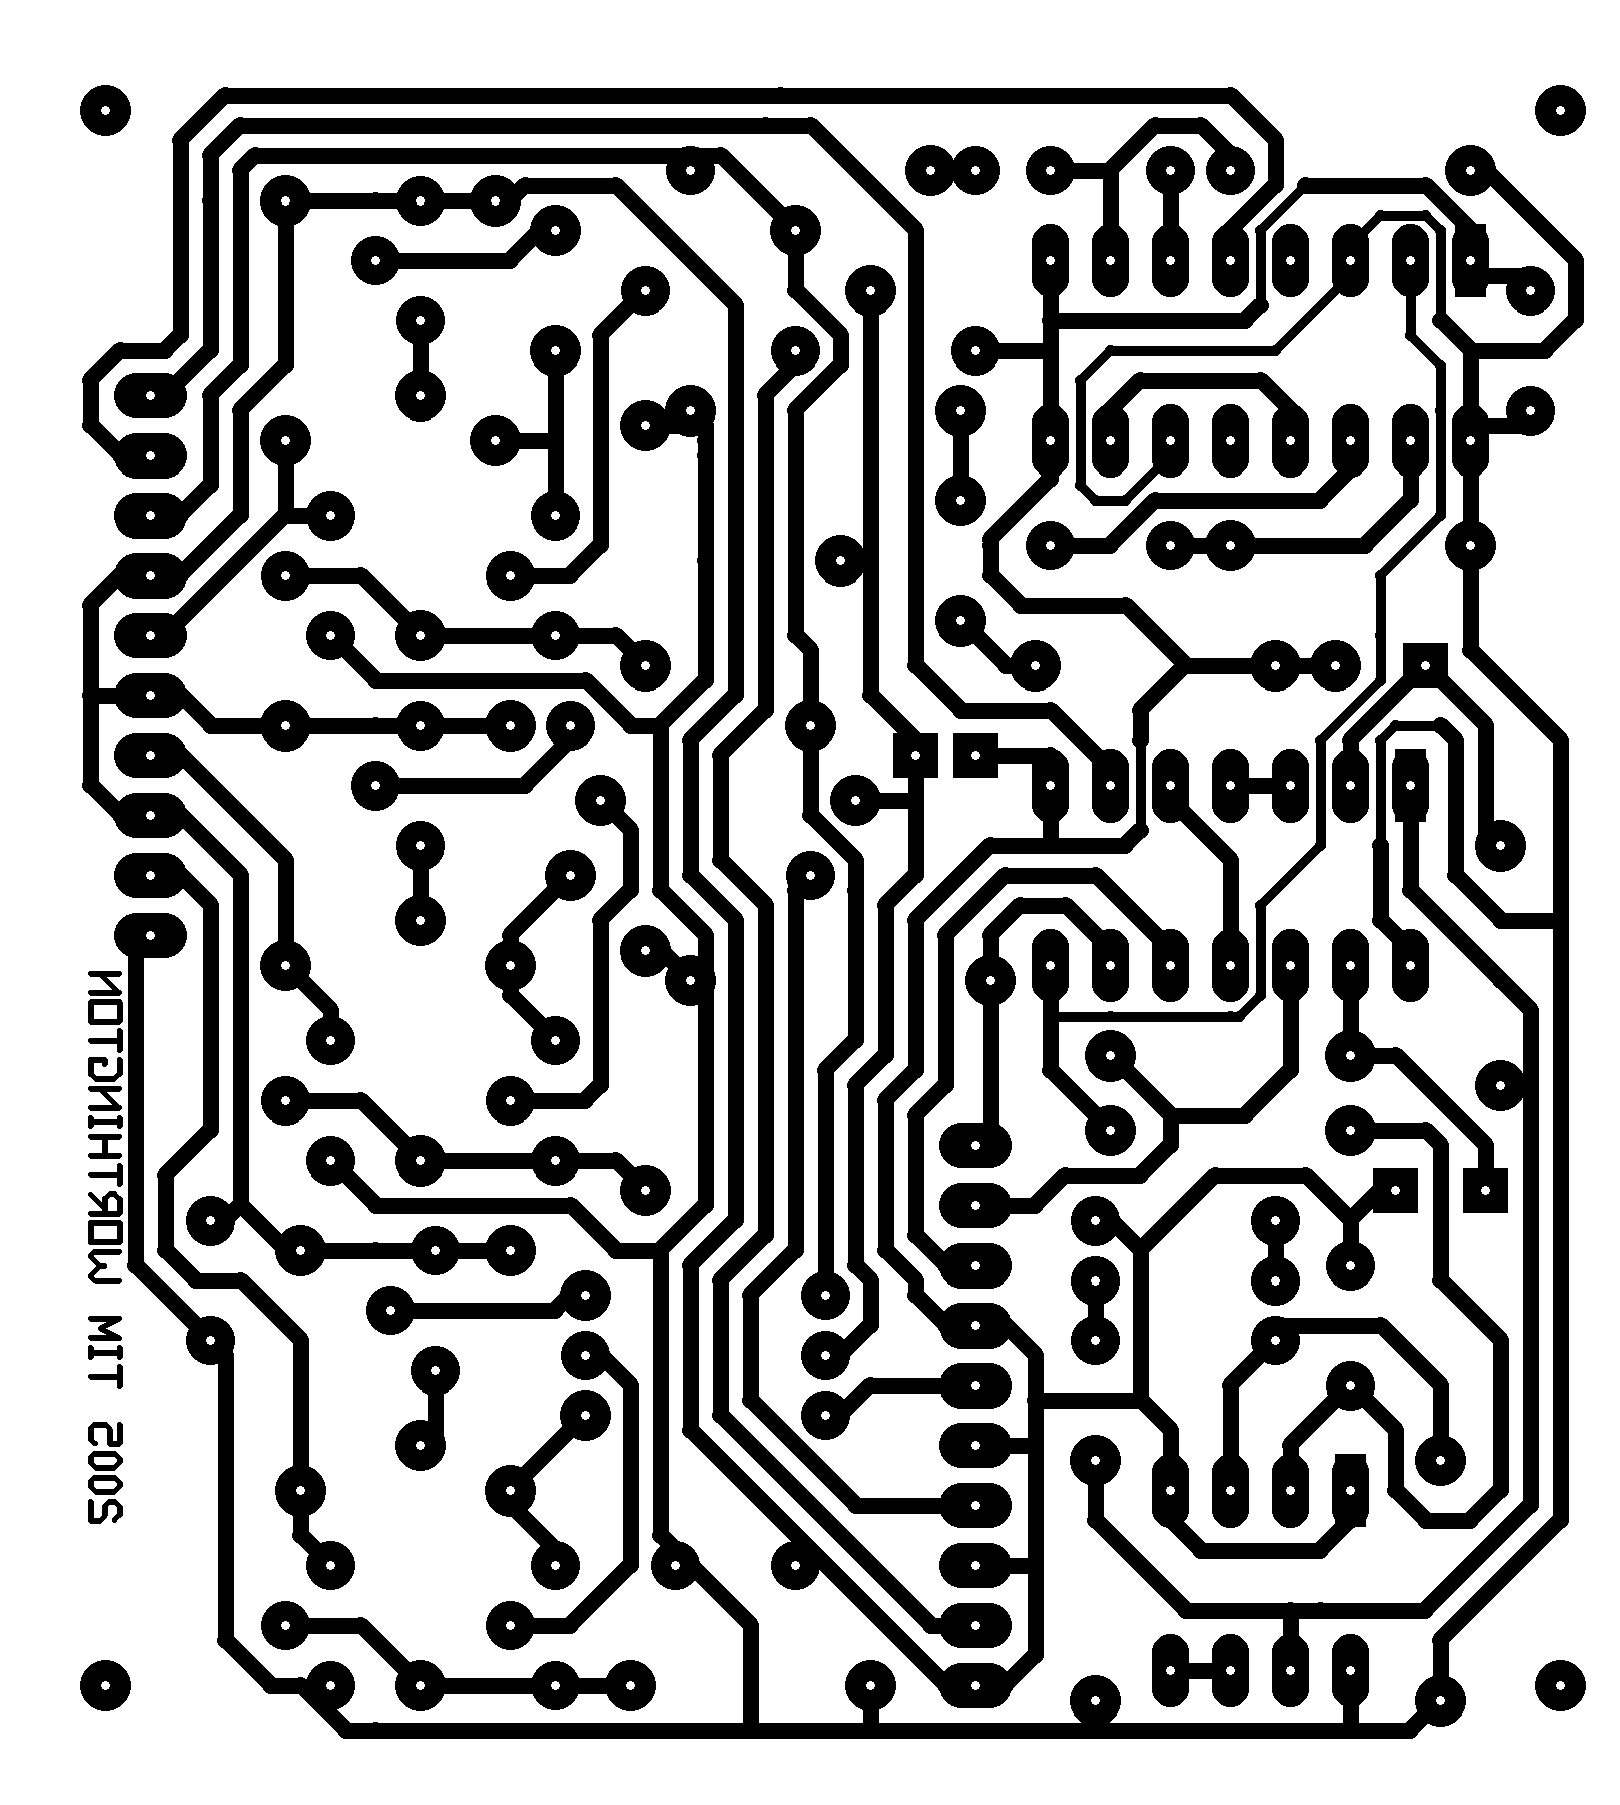 Uniform Connectedness.  The white color of the background allow the viewer to perceive the electrical isolation of each trace on the circuit board.